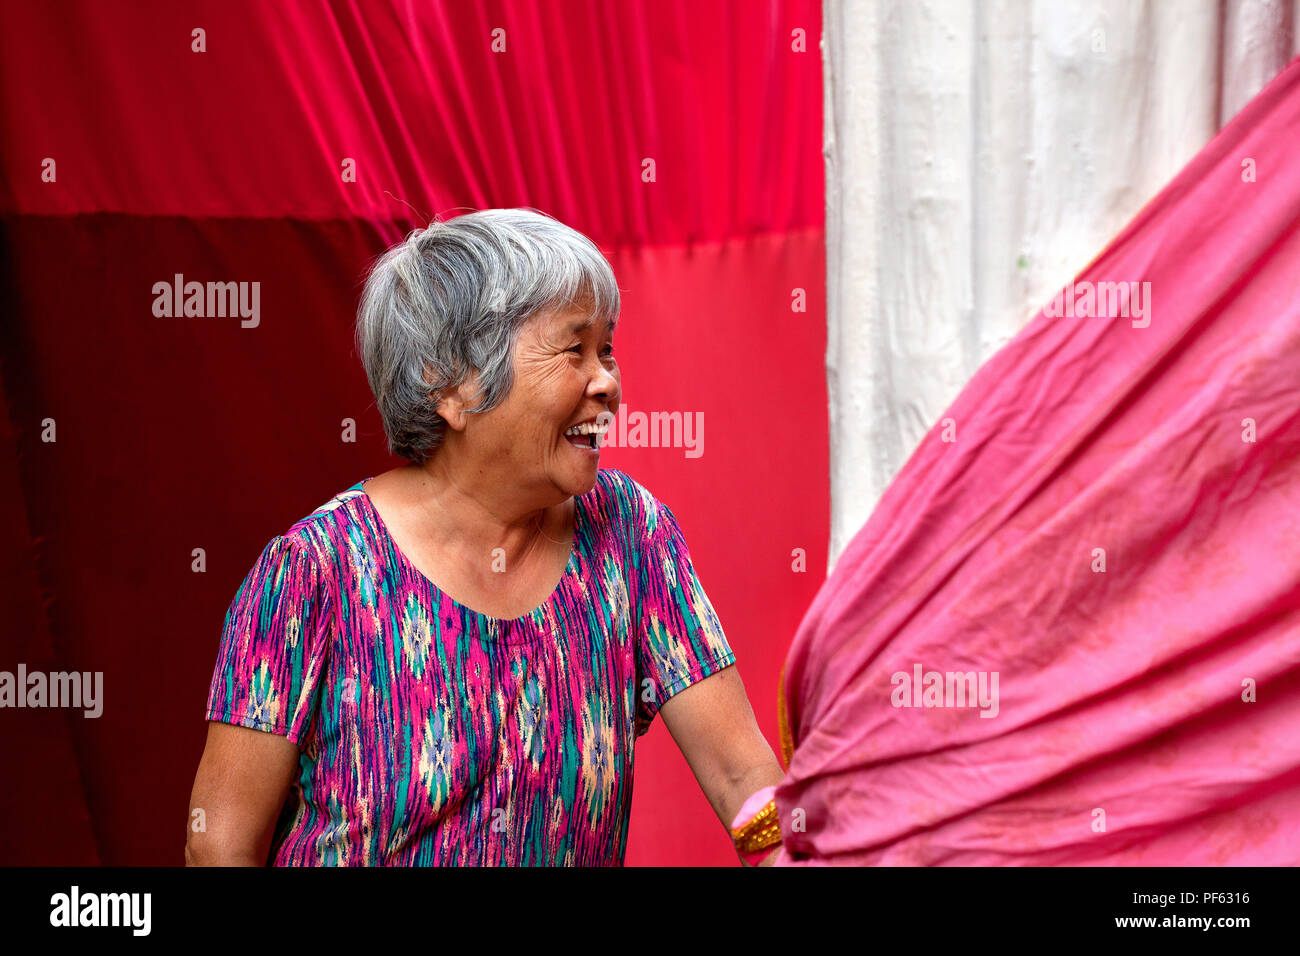 Older Chinese woman smiling for photo, Gracia, Barcelona. - Stock Image